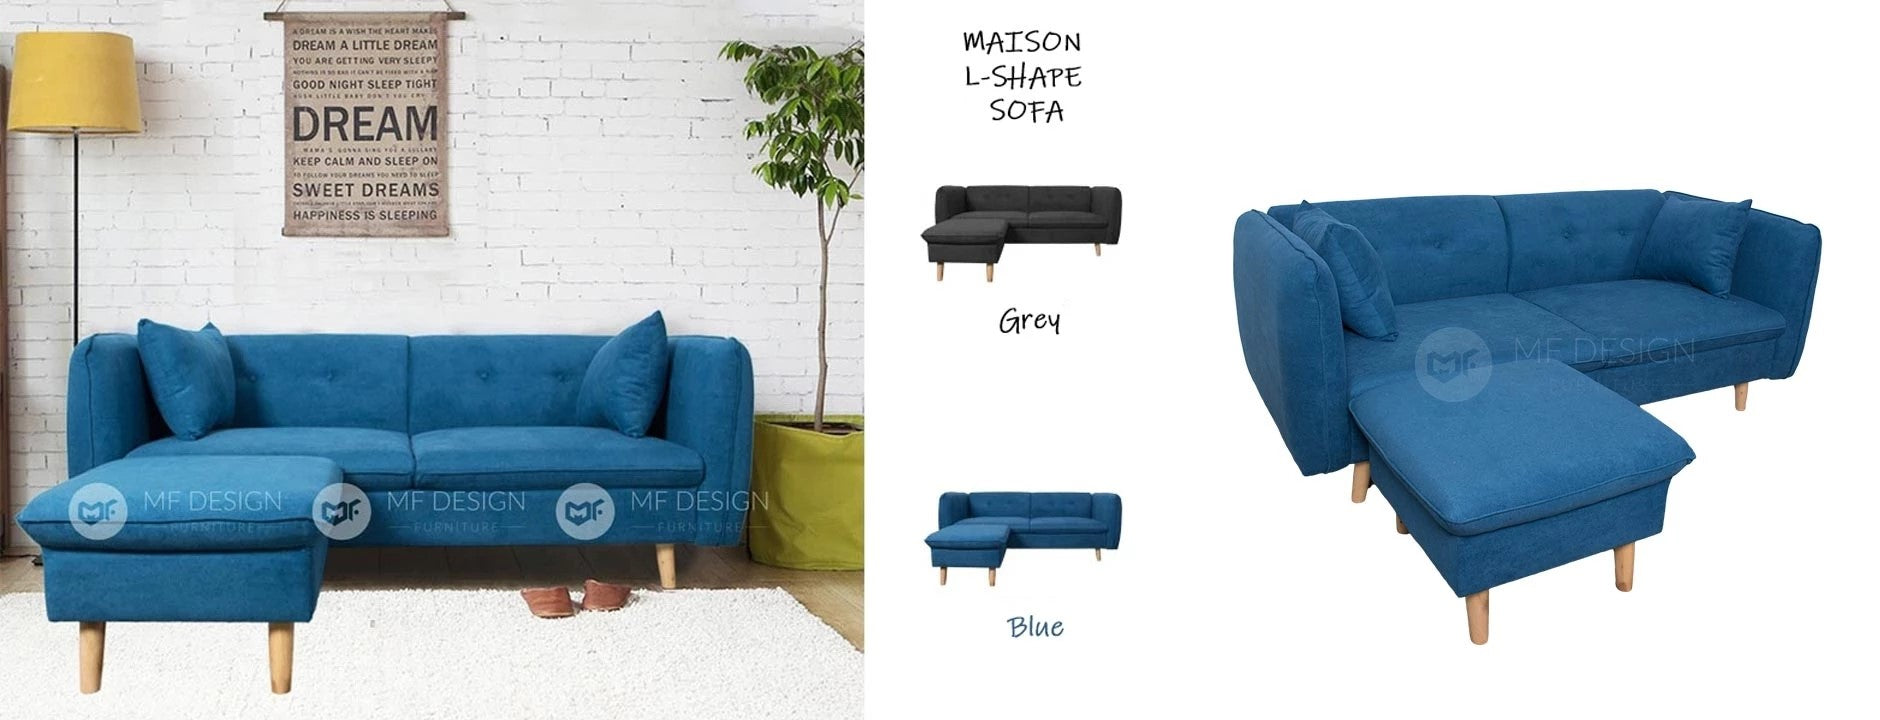 Shop Online Furniture in Malaysia by MF DESIGN – MF DESIGN PREMIUM